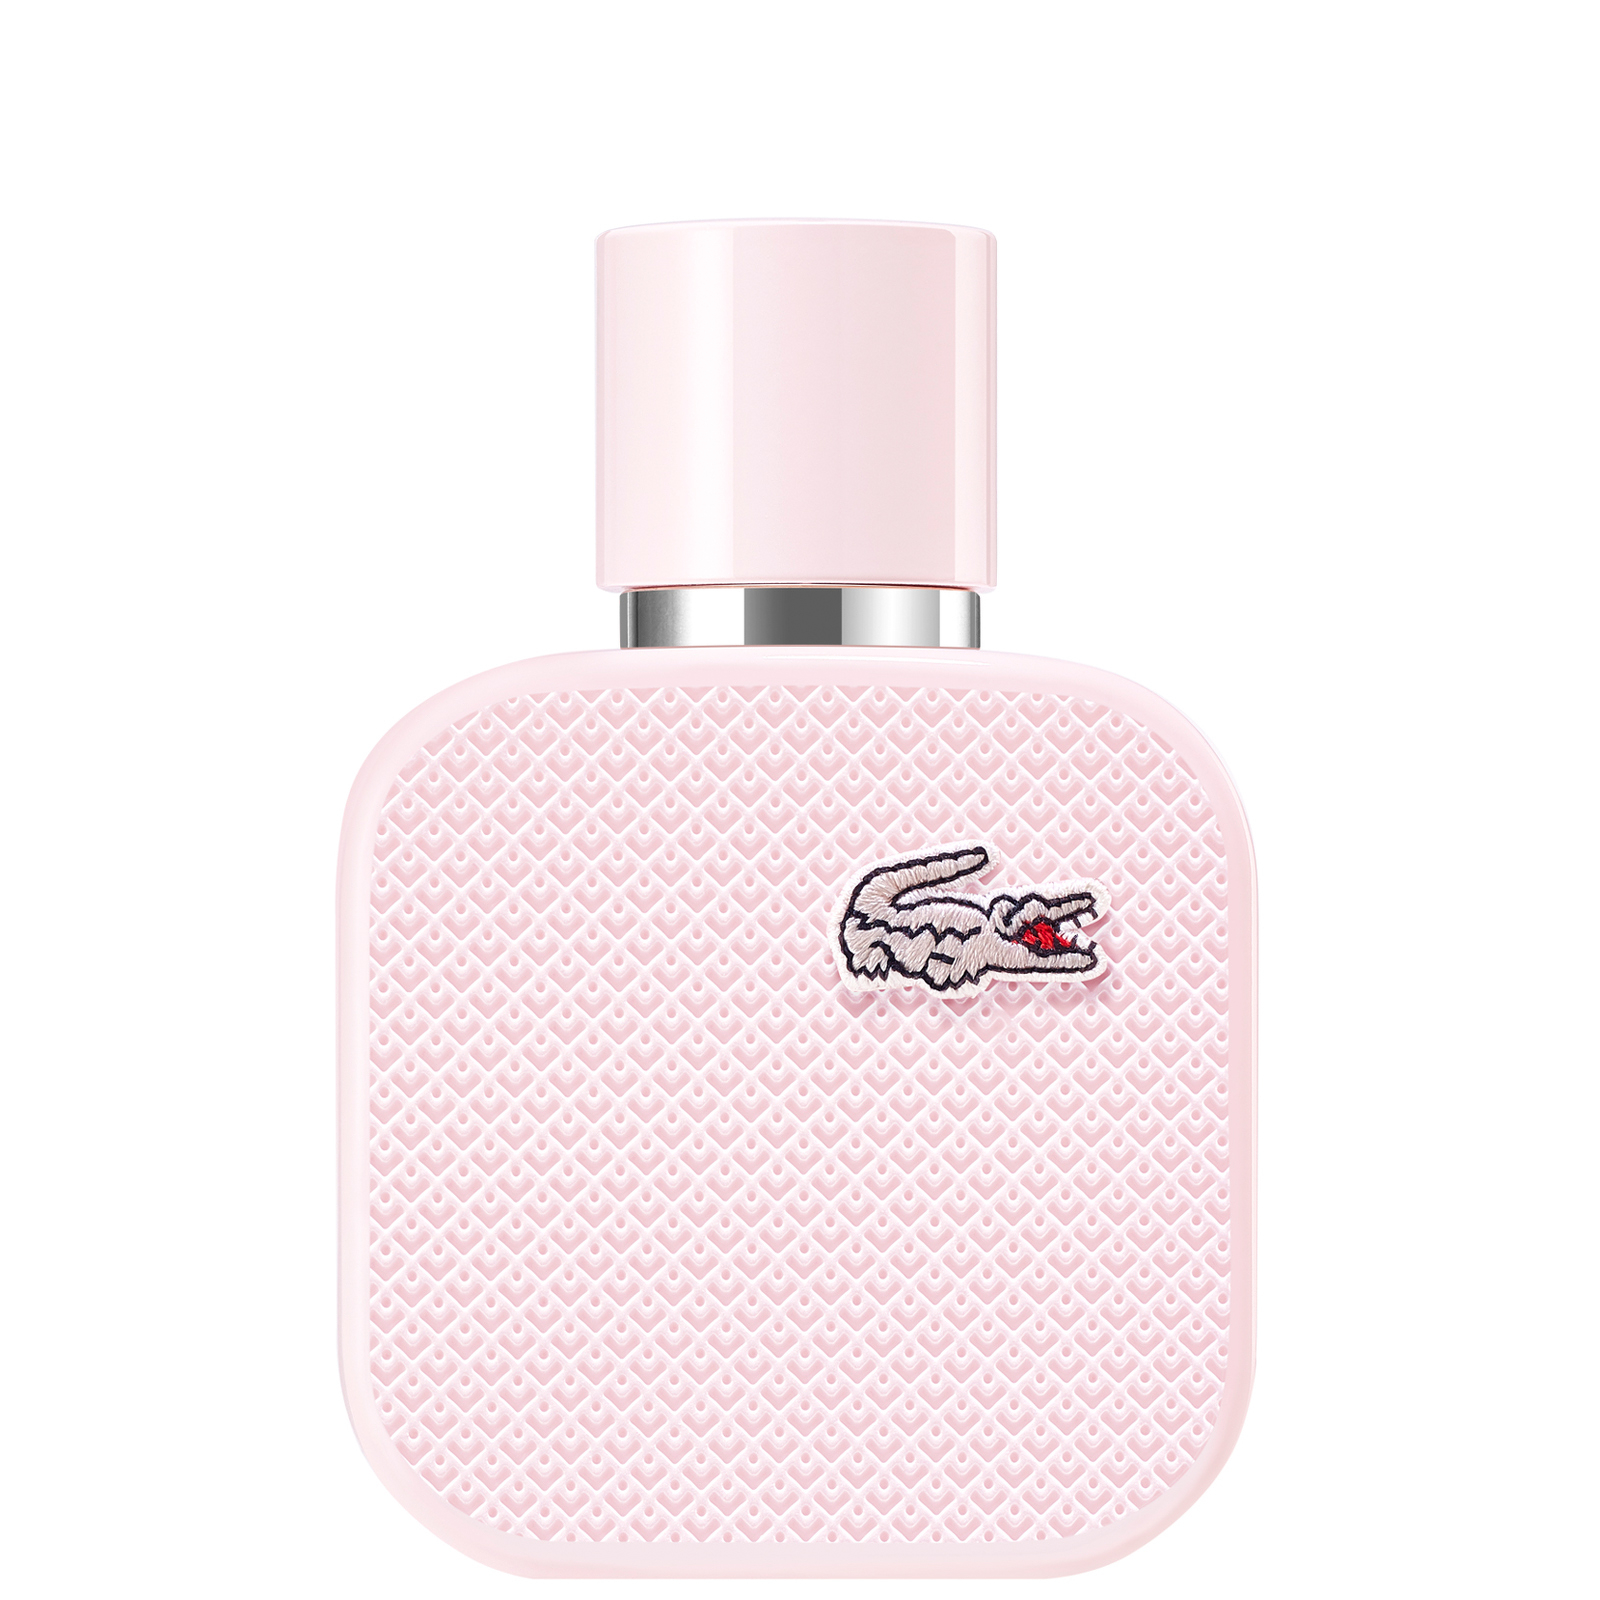 Lacoste L.12.12 Rose Eau de Parfum Spray 35ml